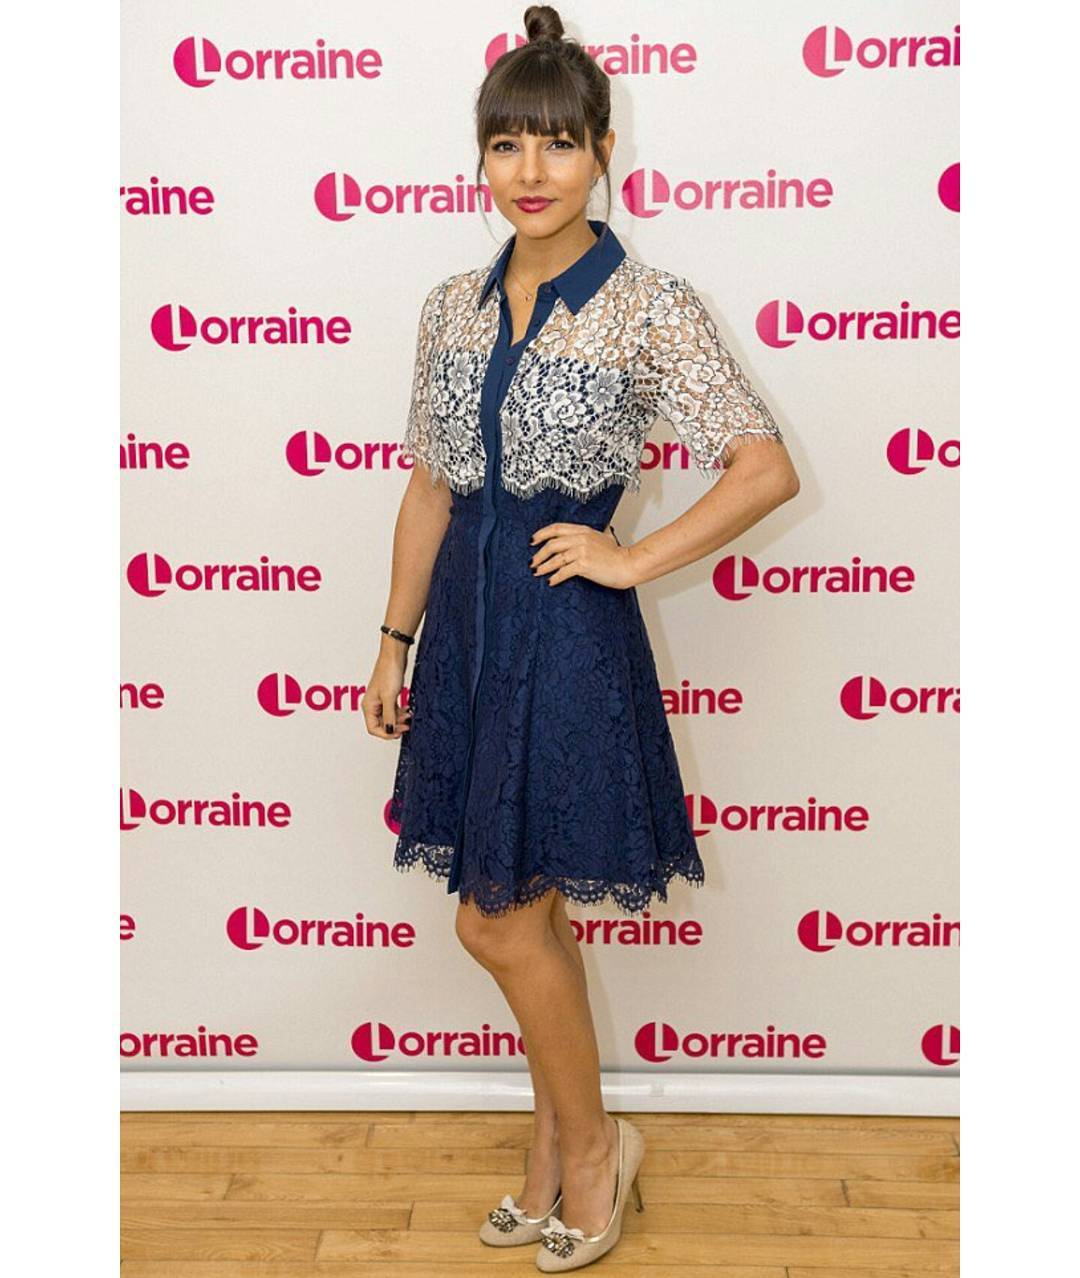 Roxanne Pallett is attending an event in blue and white dress